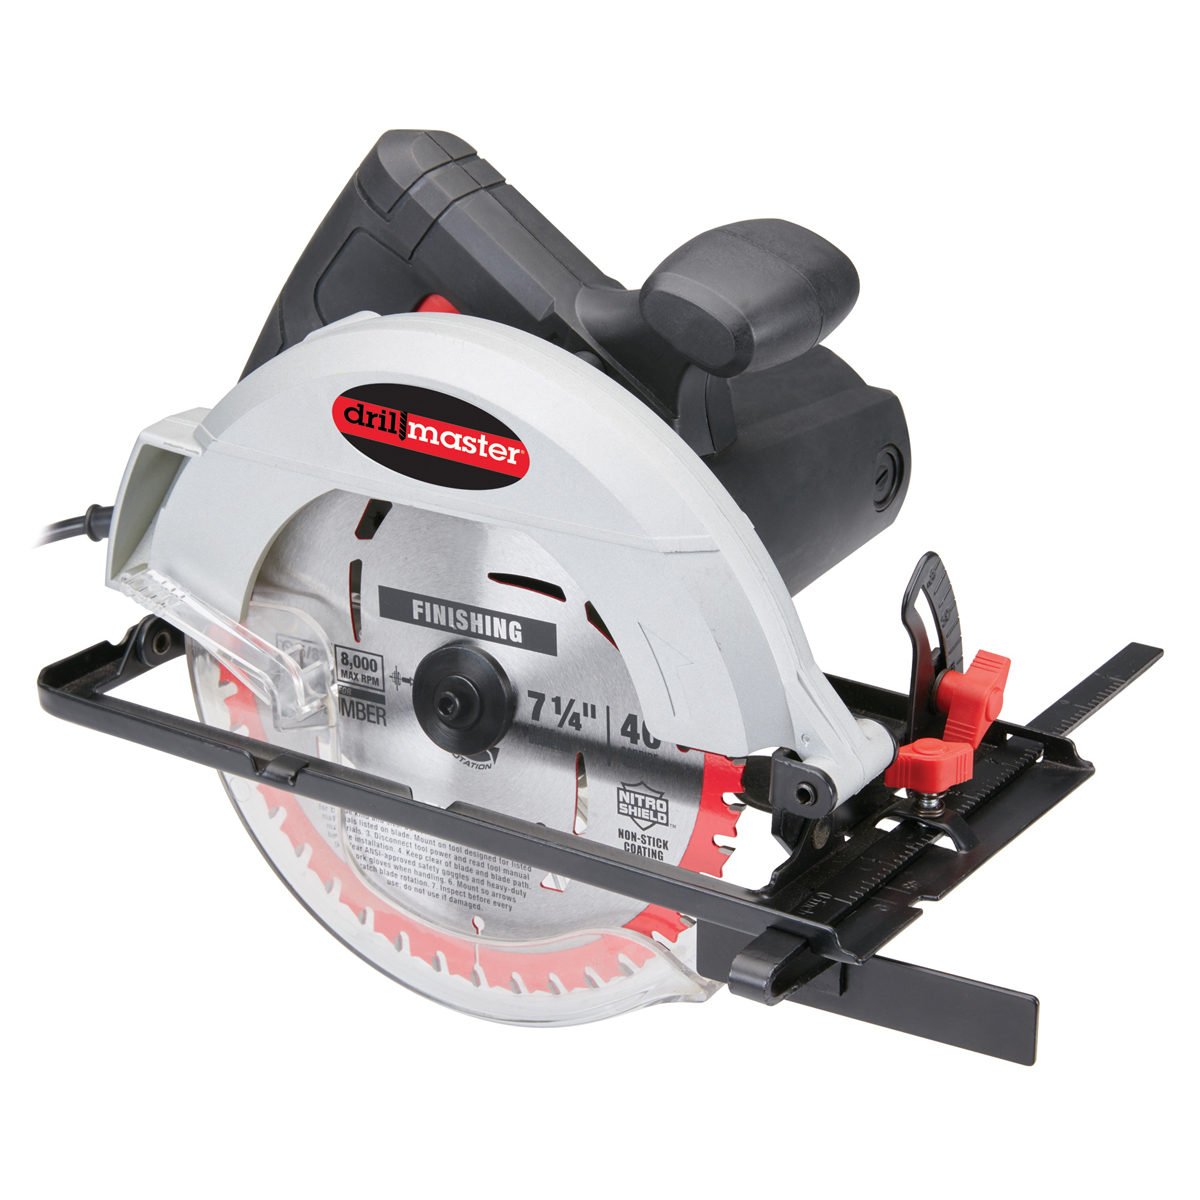 7 14 in 10 amp circular saw 10 amp circular saw greentooth Gallery